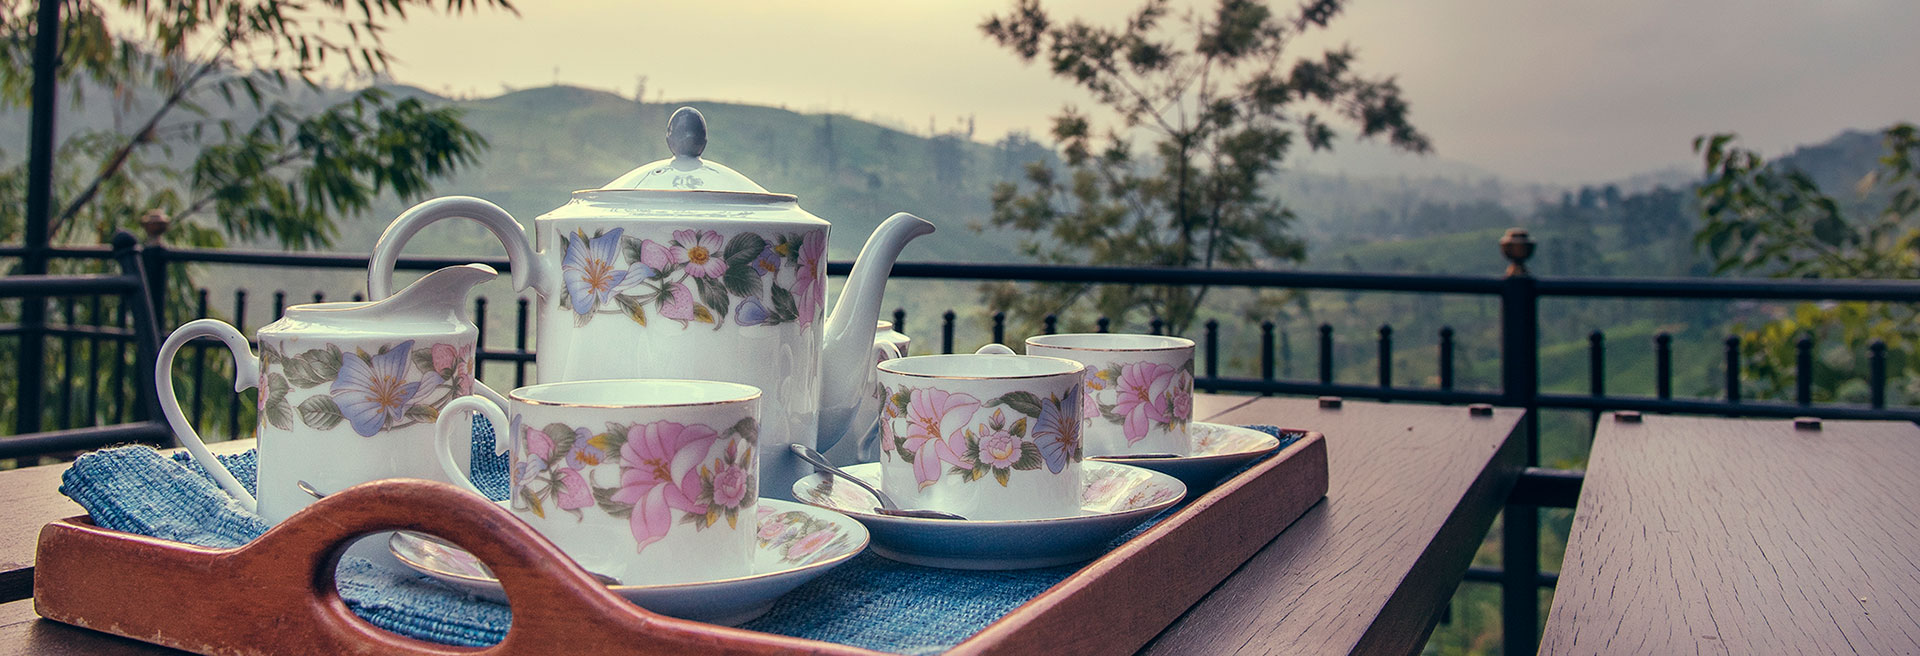 Close up image of a floral tea set at Jetwing Strathdon